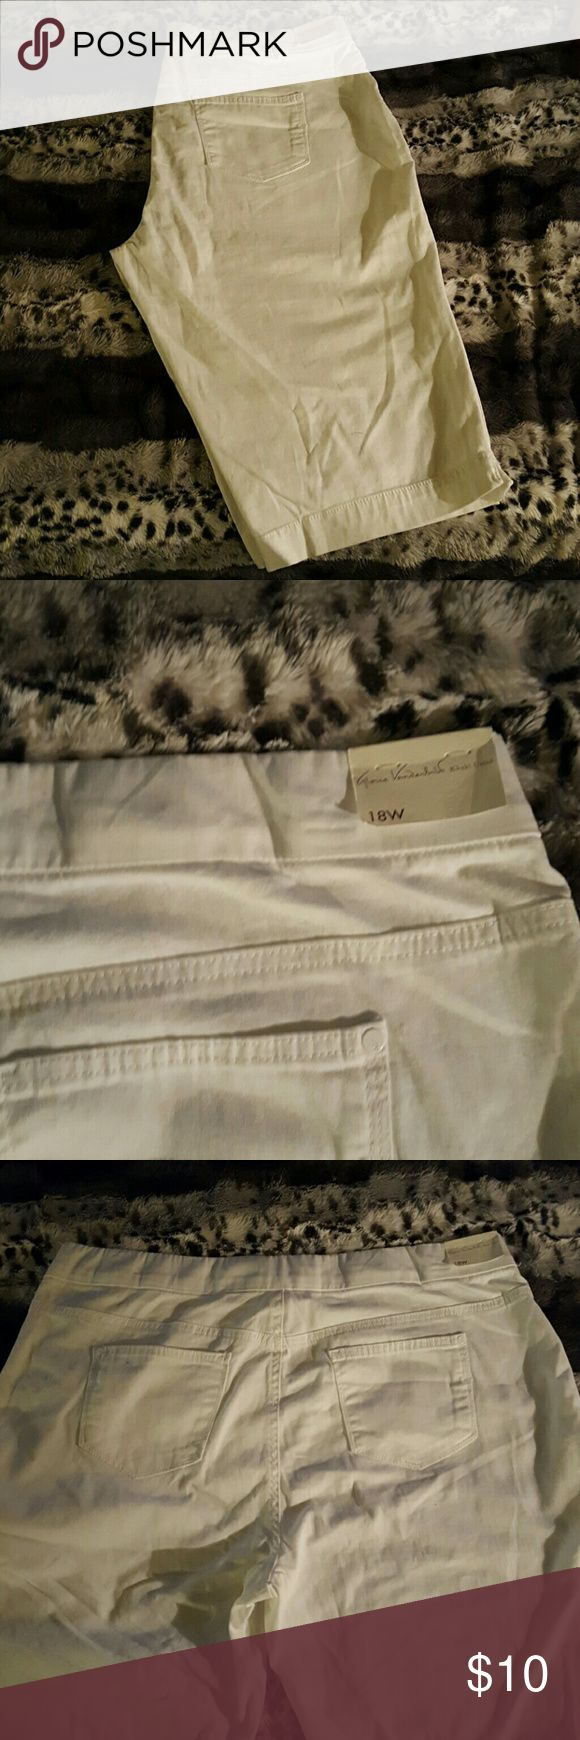 Gloria Vanderbilt NWT white capris plus sz. 18W These are really cute capris their new with the tag attached from Gloria Vanderbilt khaki United. There plus size 18 inseam measures 14. 5 inches. We have a nice wide elastic waistband, faux front pockets and faux front zipper. The two back pockets are real pockets. Gloria Vanderbilt Pants Capris